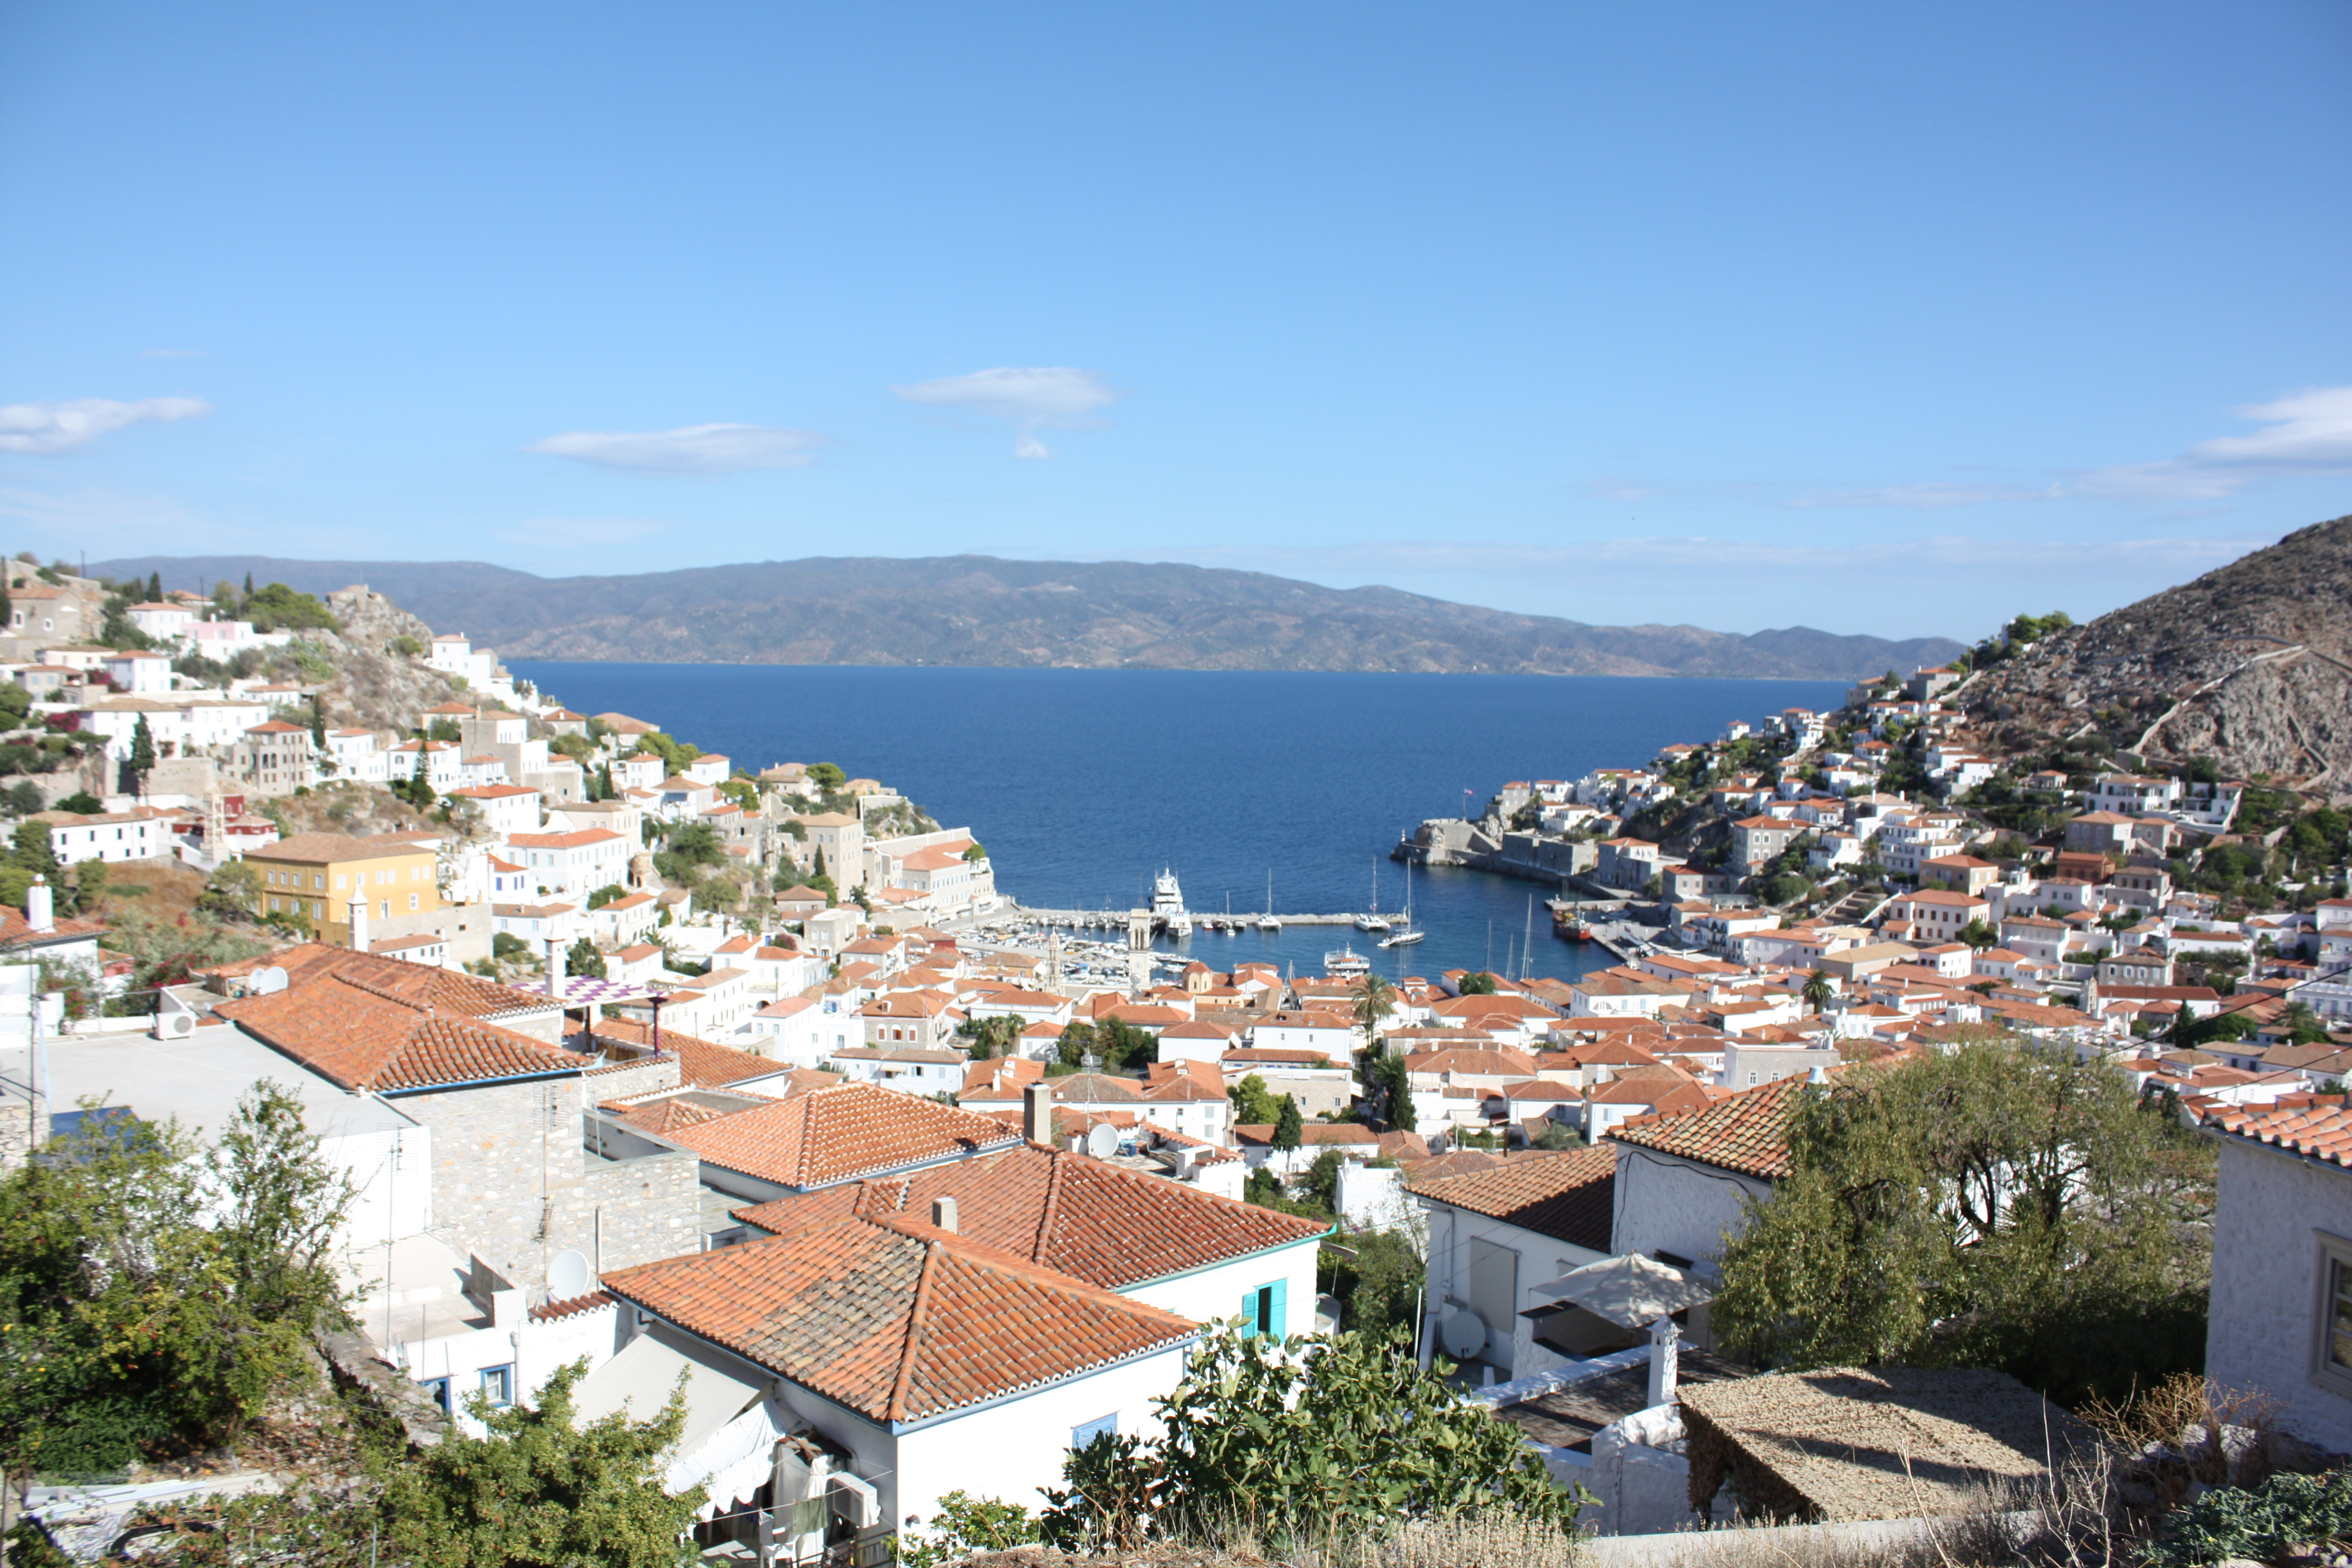 Hydra town view over the sea